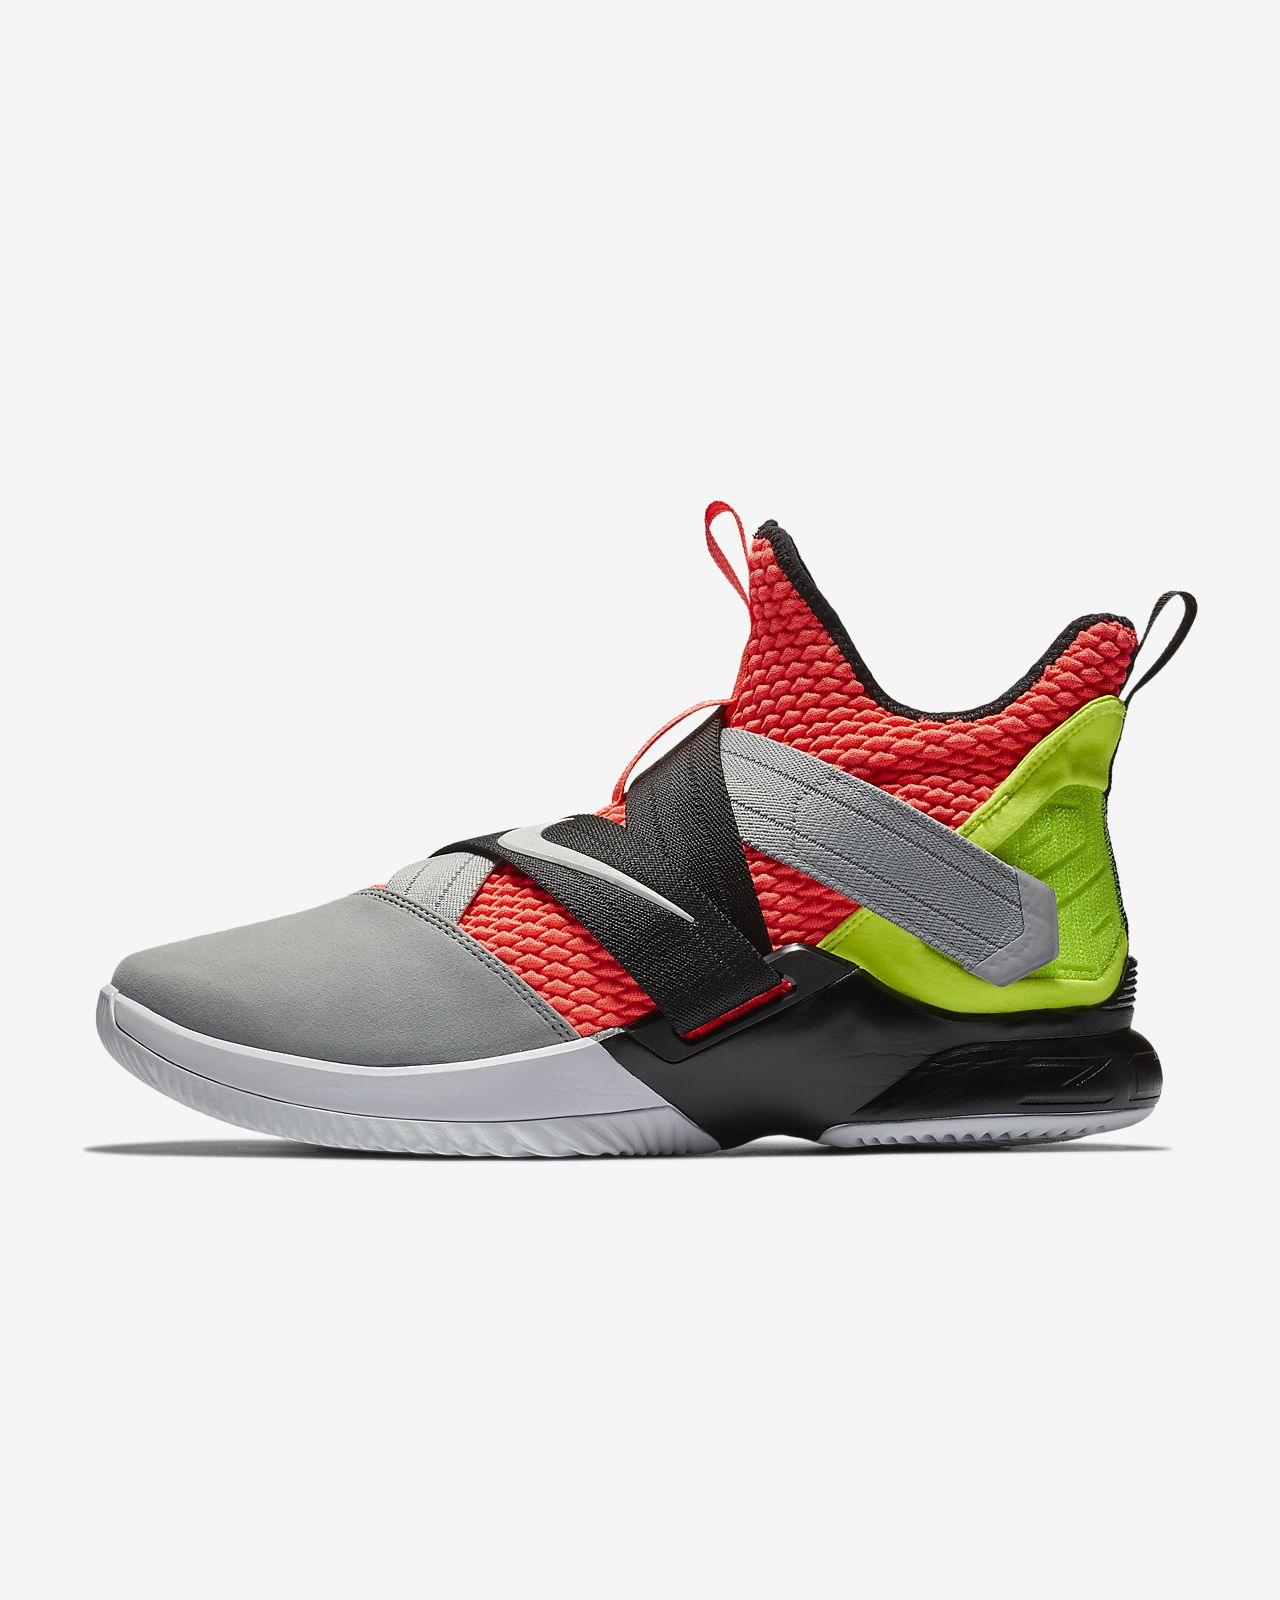 timeless design a78d1 26513 LeBron Soldier 12 SFG Basketball Shoe